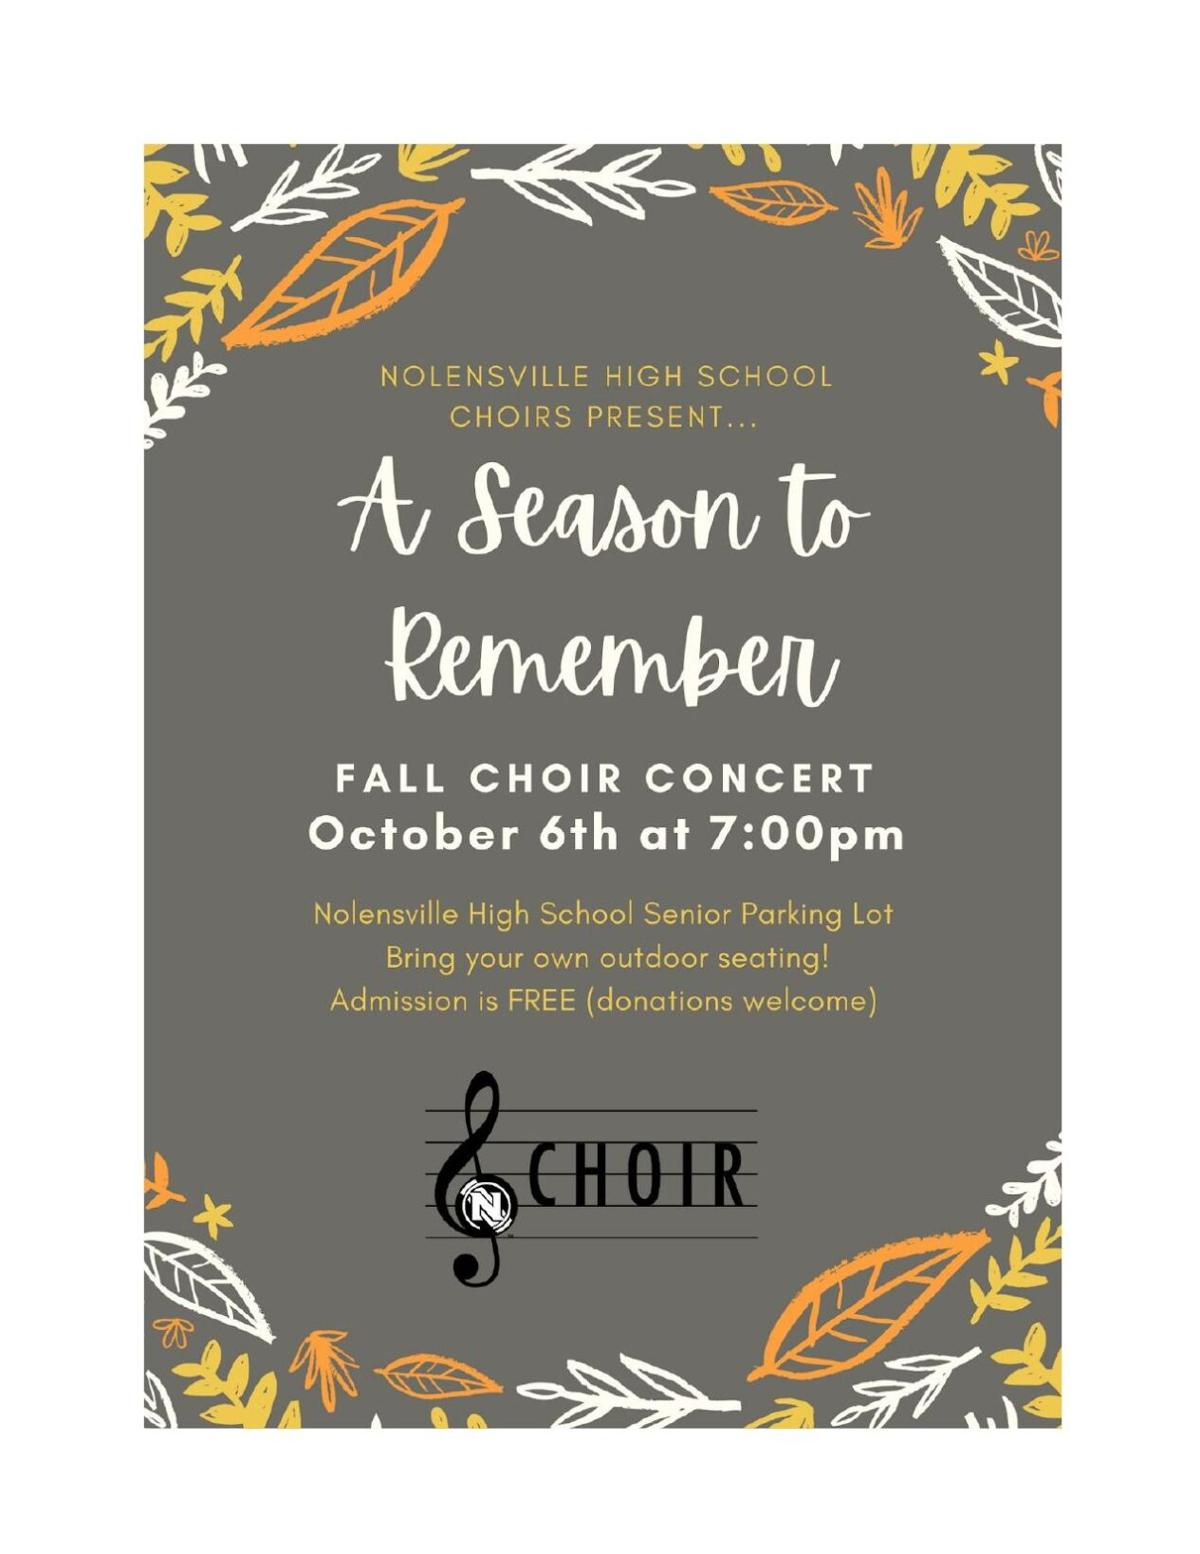 A Season to Remember NHS Choirs Fall Concert 2020